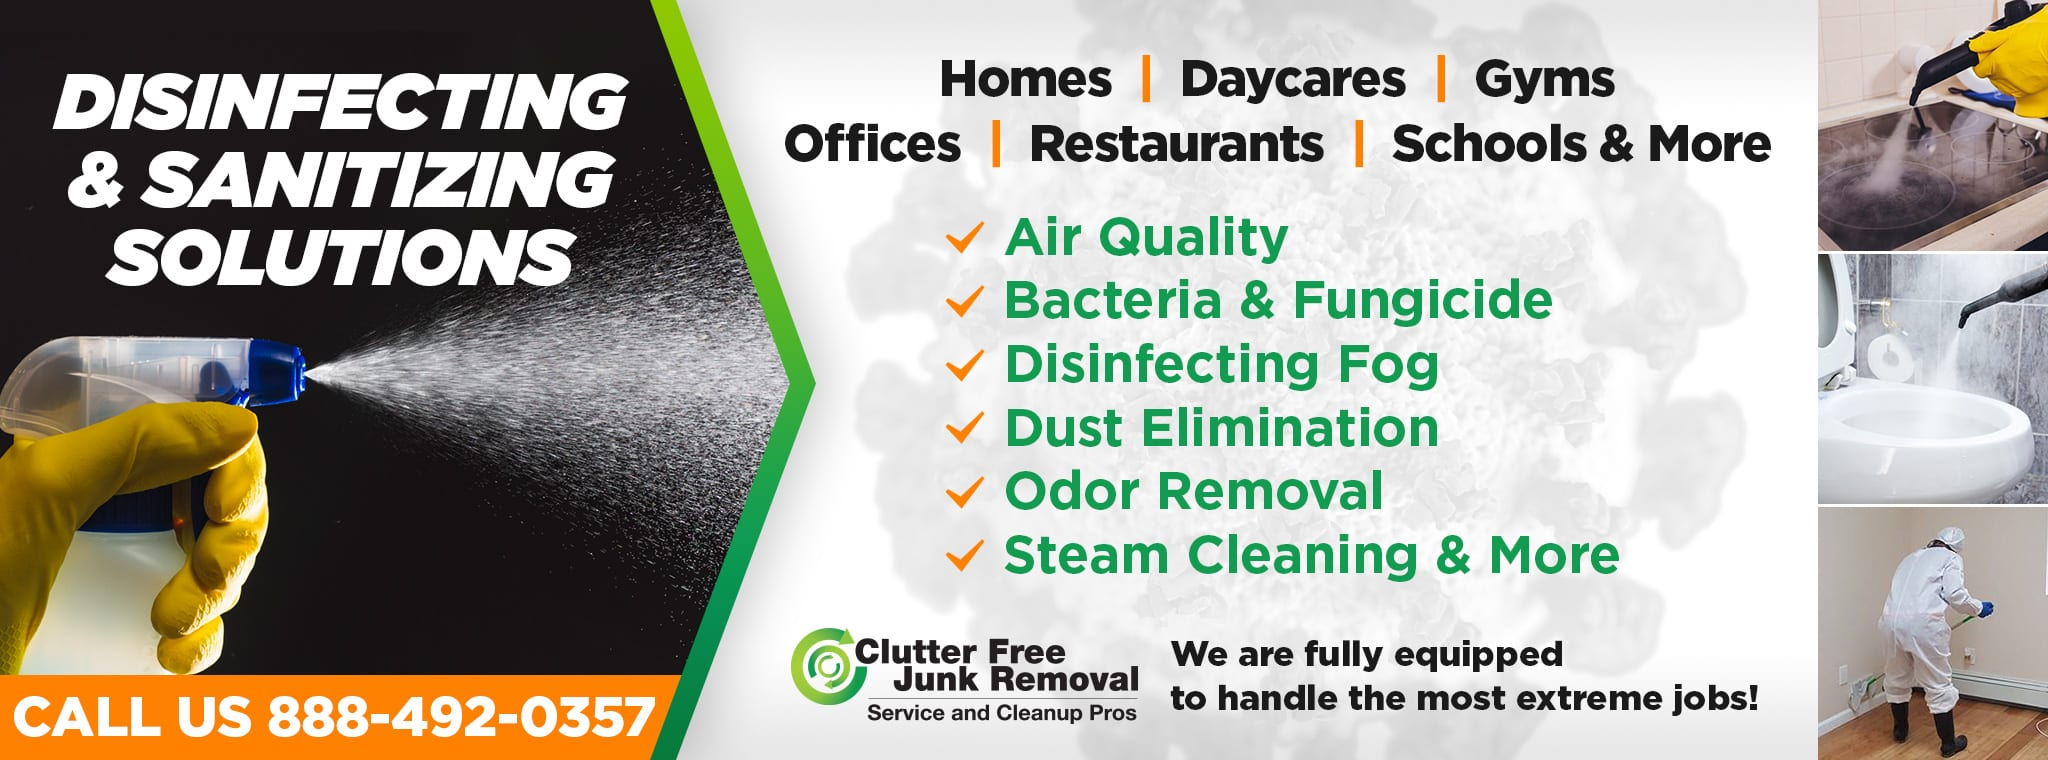 Sanitizing Service in New York, NY. and Tri-State Area